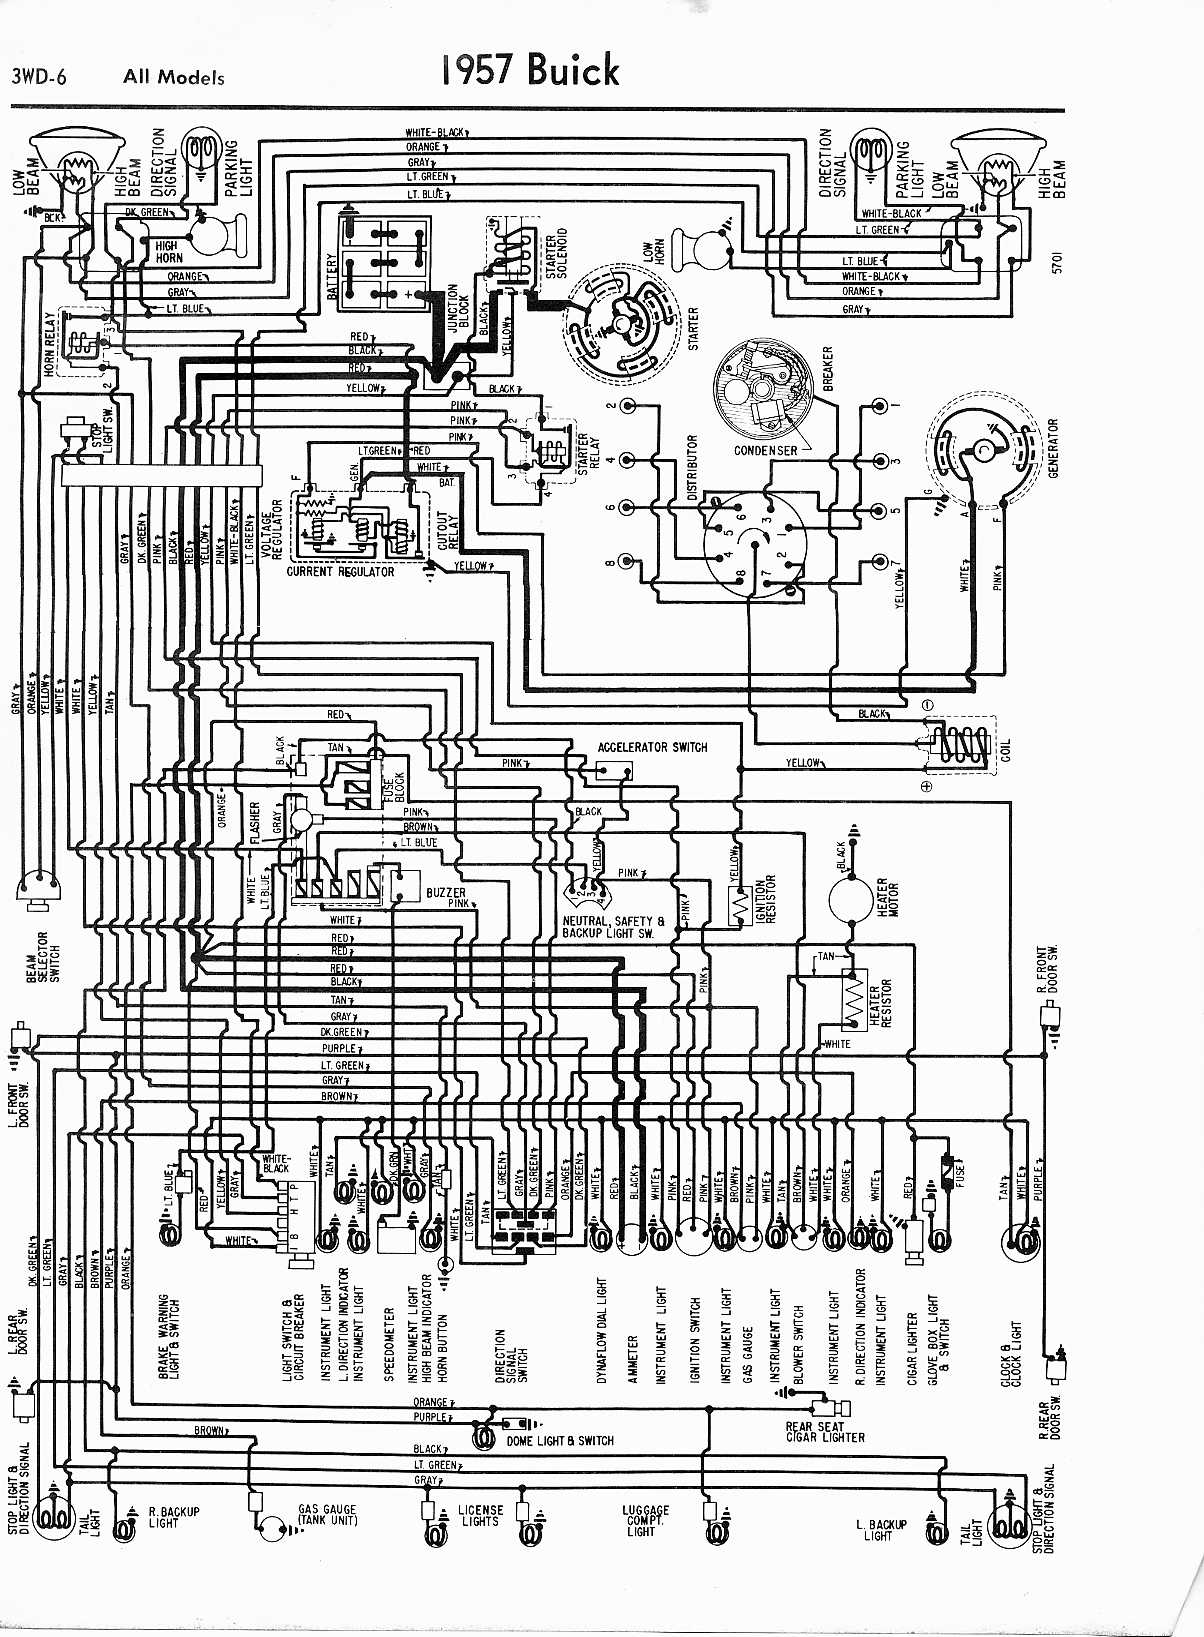 free buick wiring diagram layout wiring diagrams u2022 rh laurafinlay co uk 2005  buick rendezvous radio